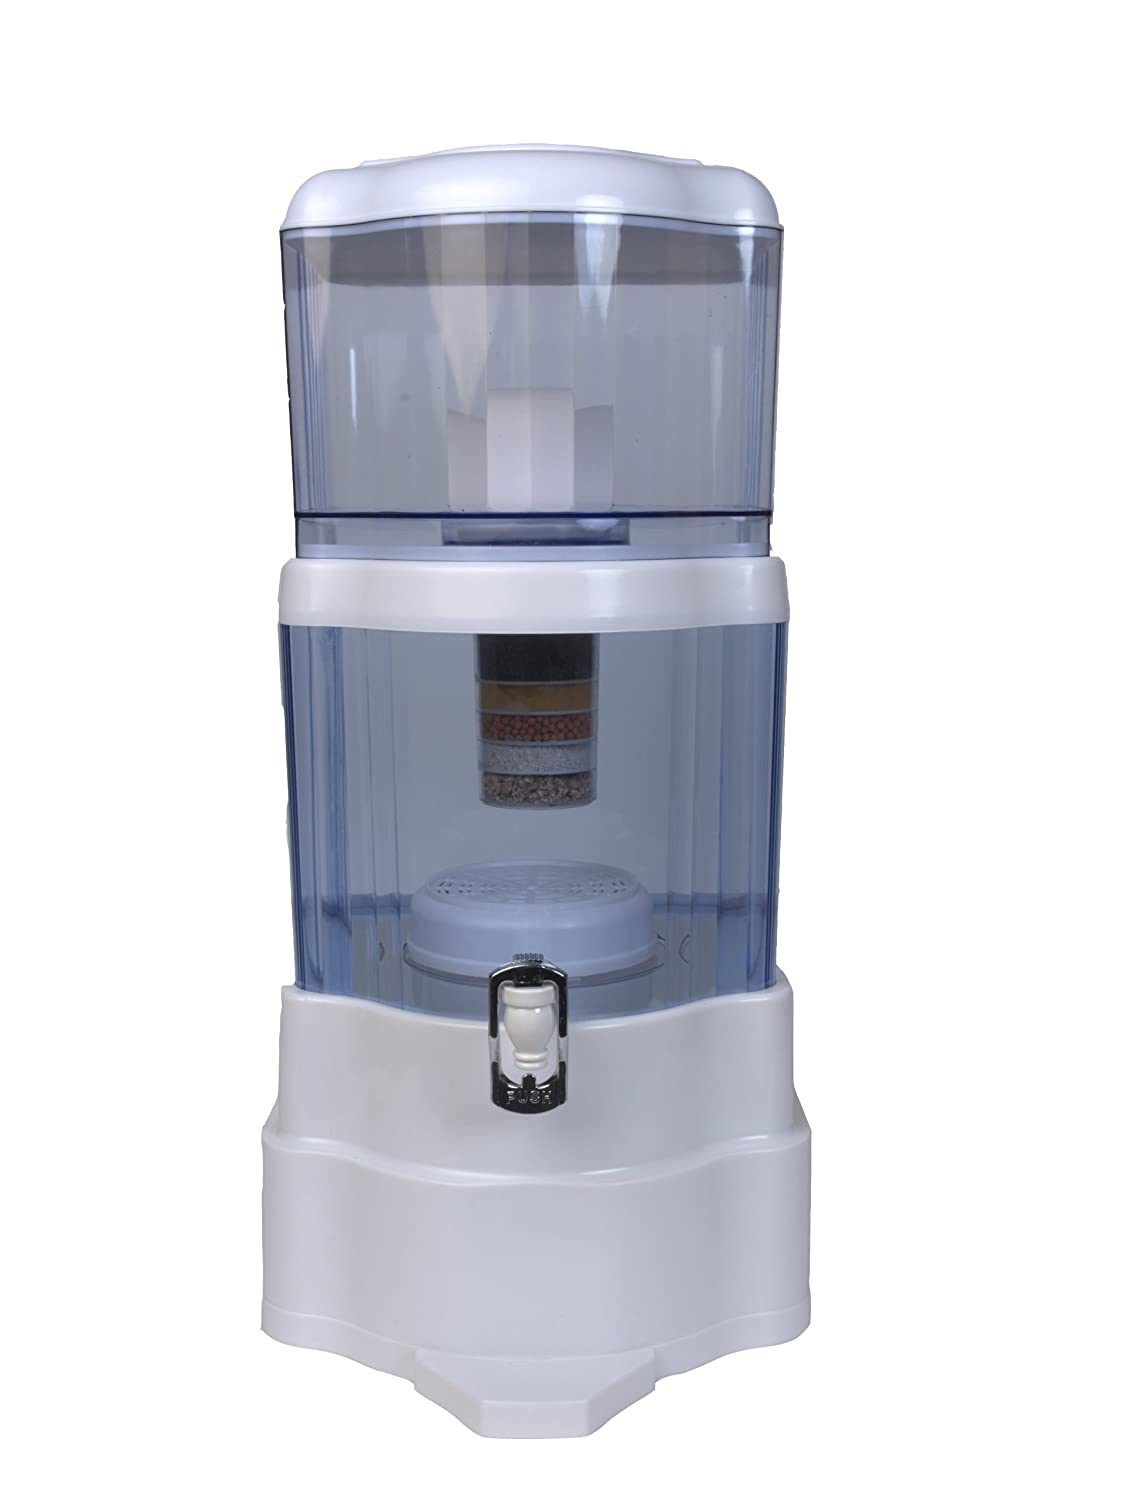 Best water filtration system for well water - Zen Water Systems 4 Gallon Countertop Water Filter System